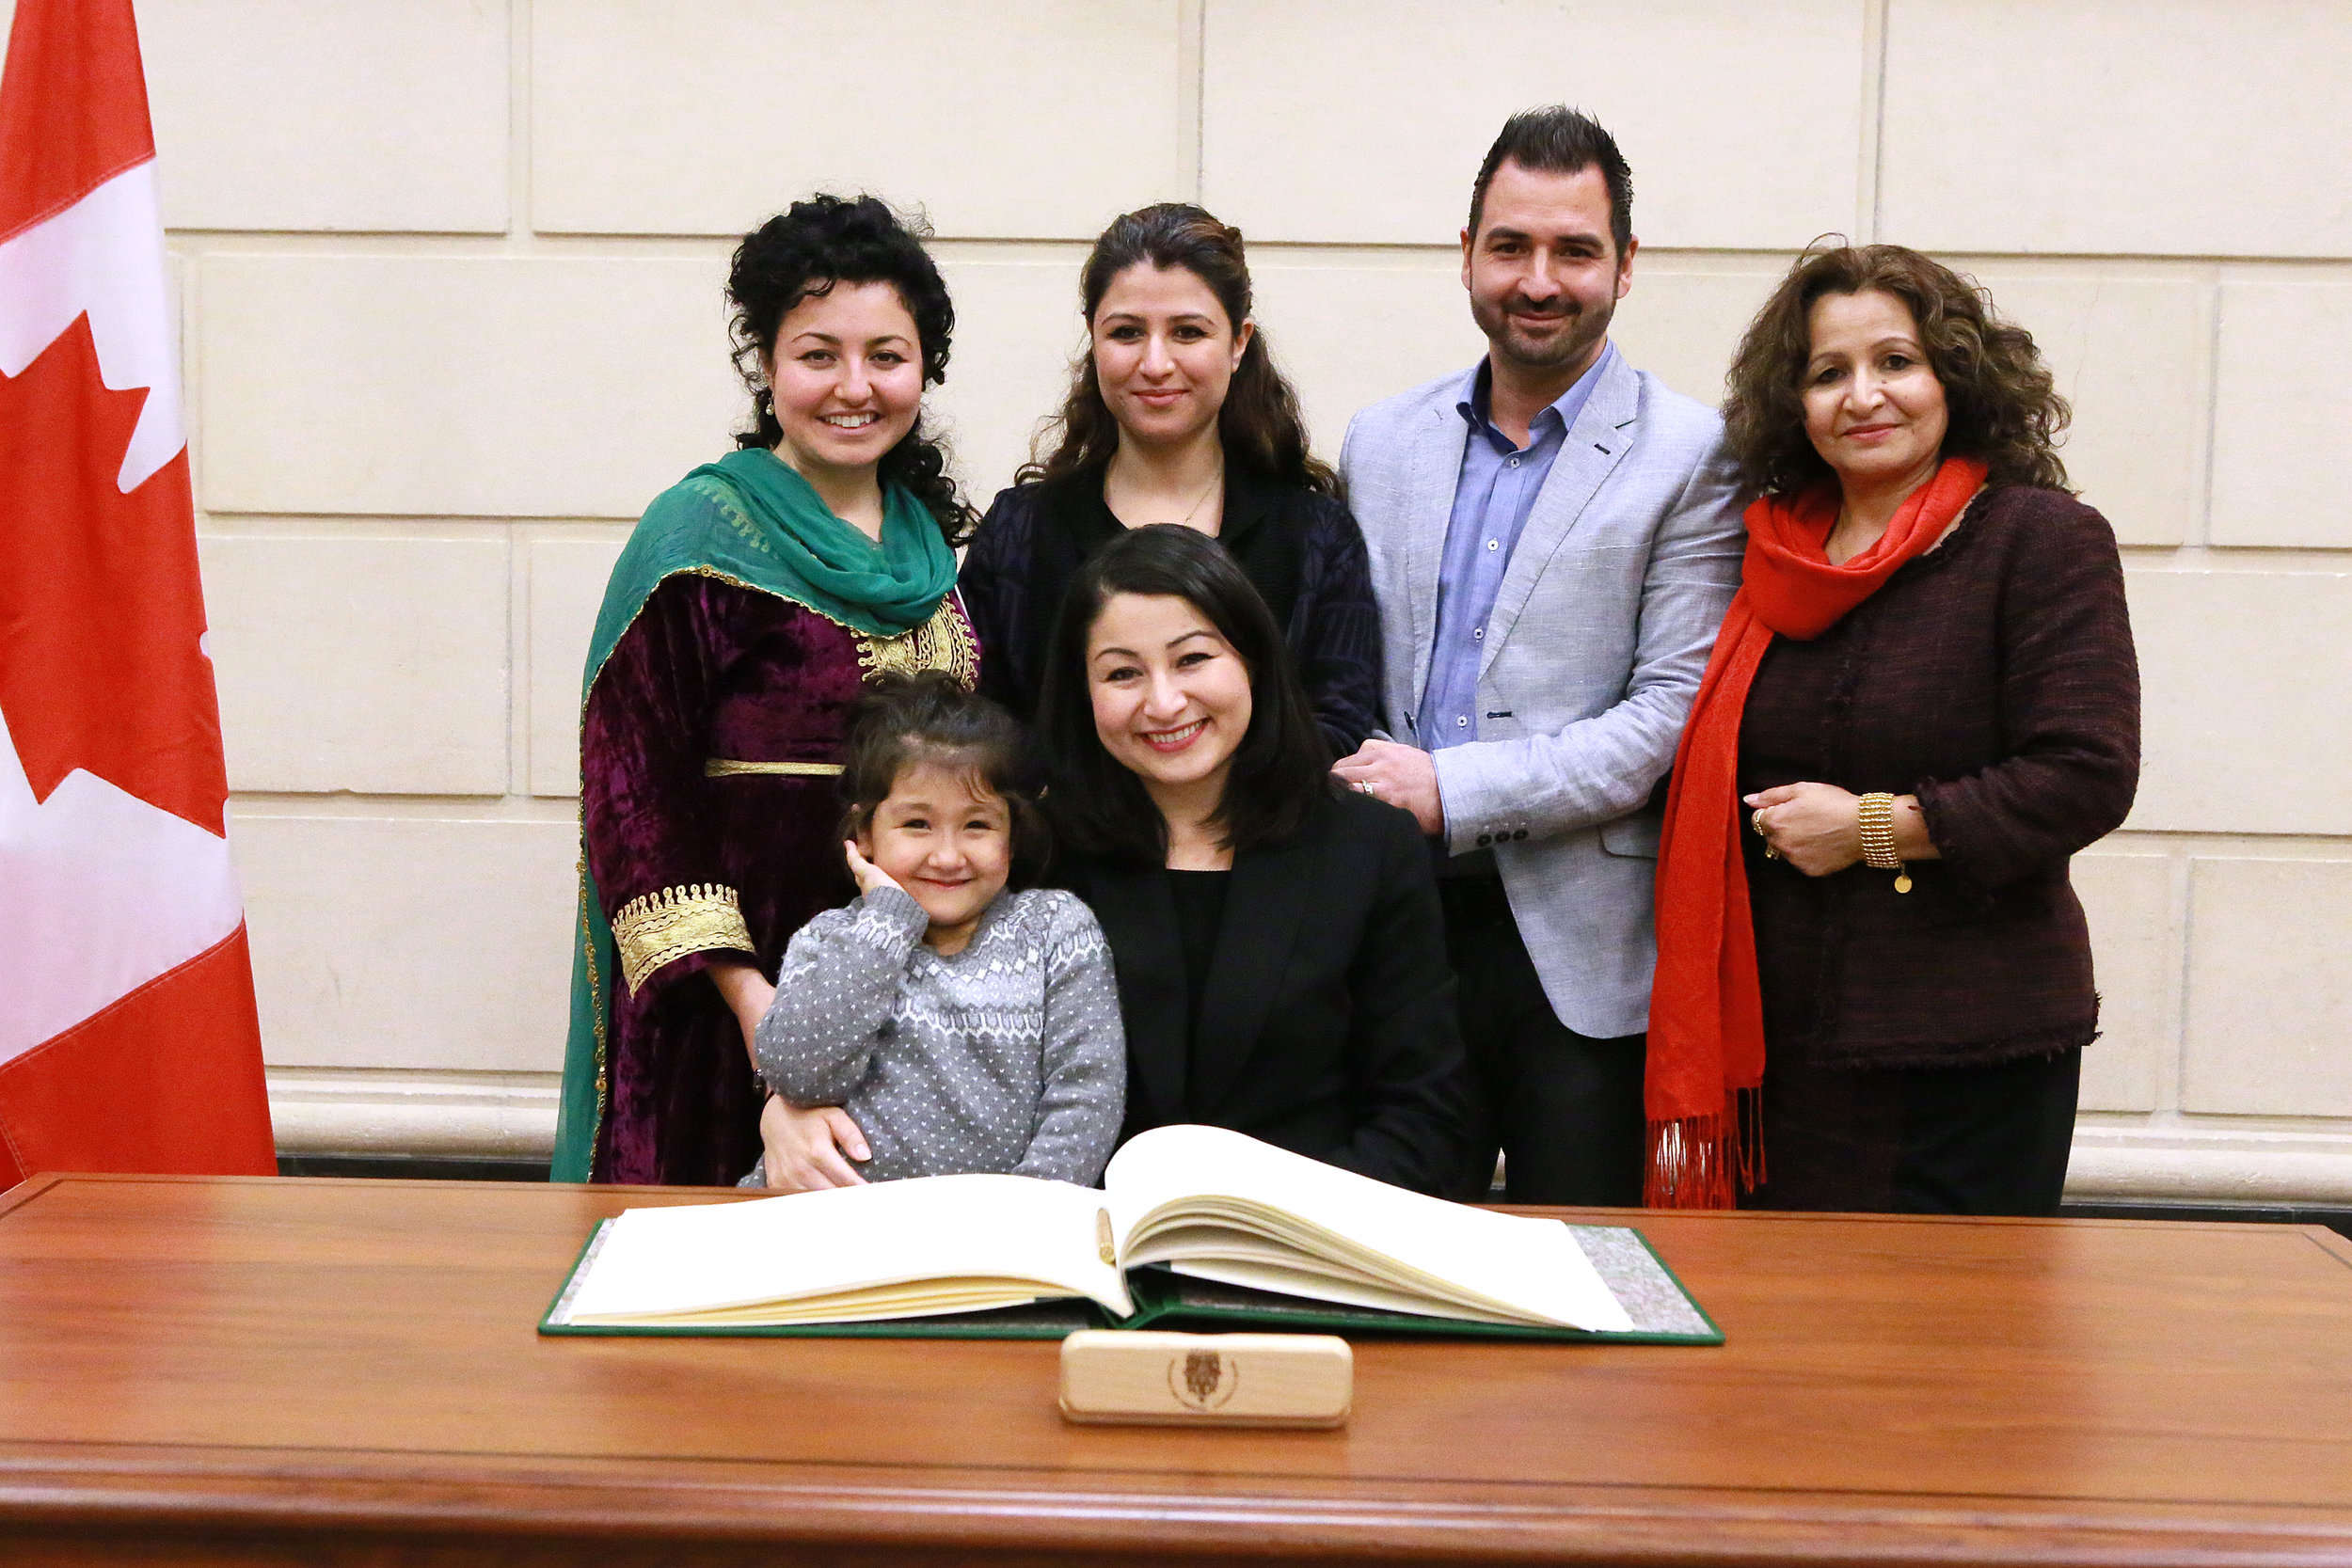 Photograph of Maryam with her family. The photograph was taken at her swearing-in ceremony as the Member of Parliament for Peterborough-Kawartha, which occurred at the House of Commons on November 24, 2016.  Clockwise starting on the left:  the family are Mehrangiz Monsef, Mina Monsef, Mehdi Taheri (Mina's husband), Soriya Basir-Monsef, Maryam Monsef, Leila Taheri (Mina & Mehdi's daughter).